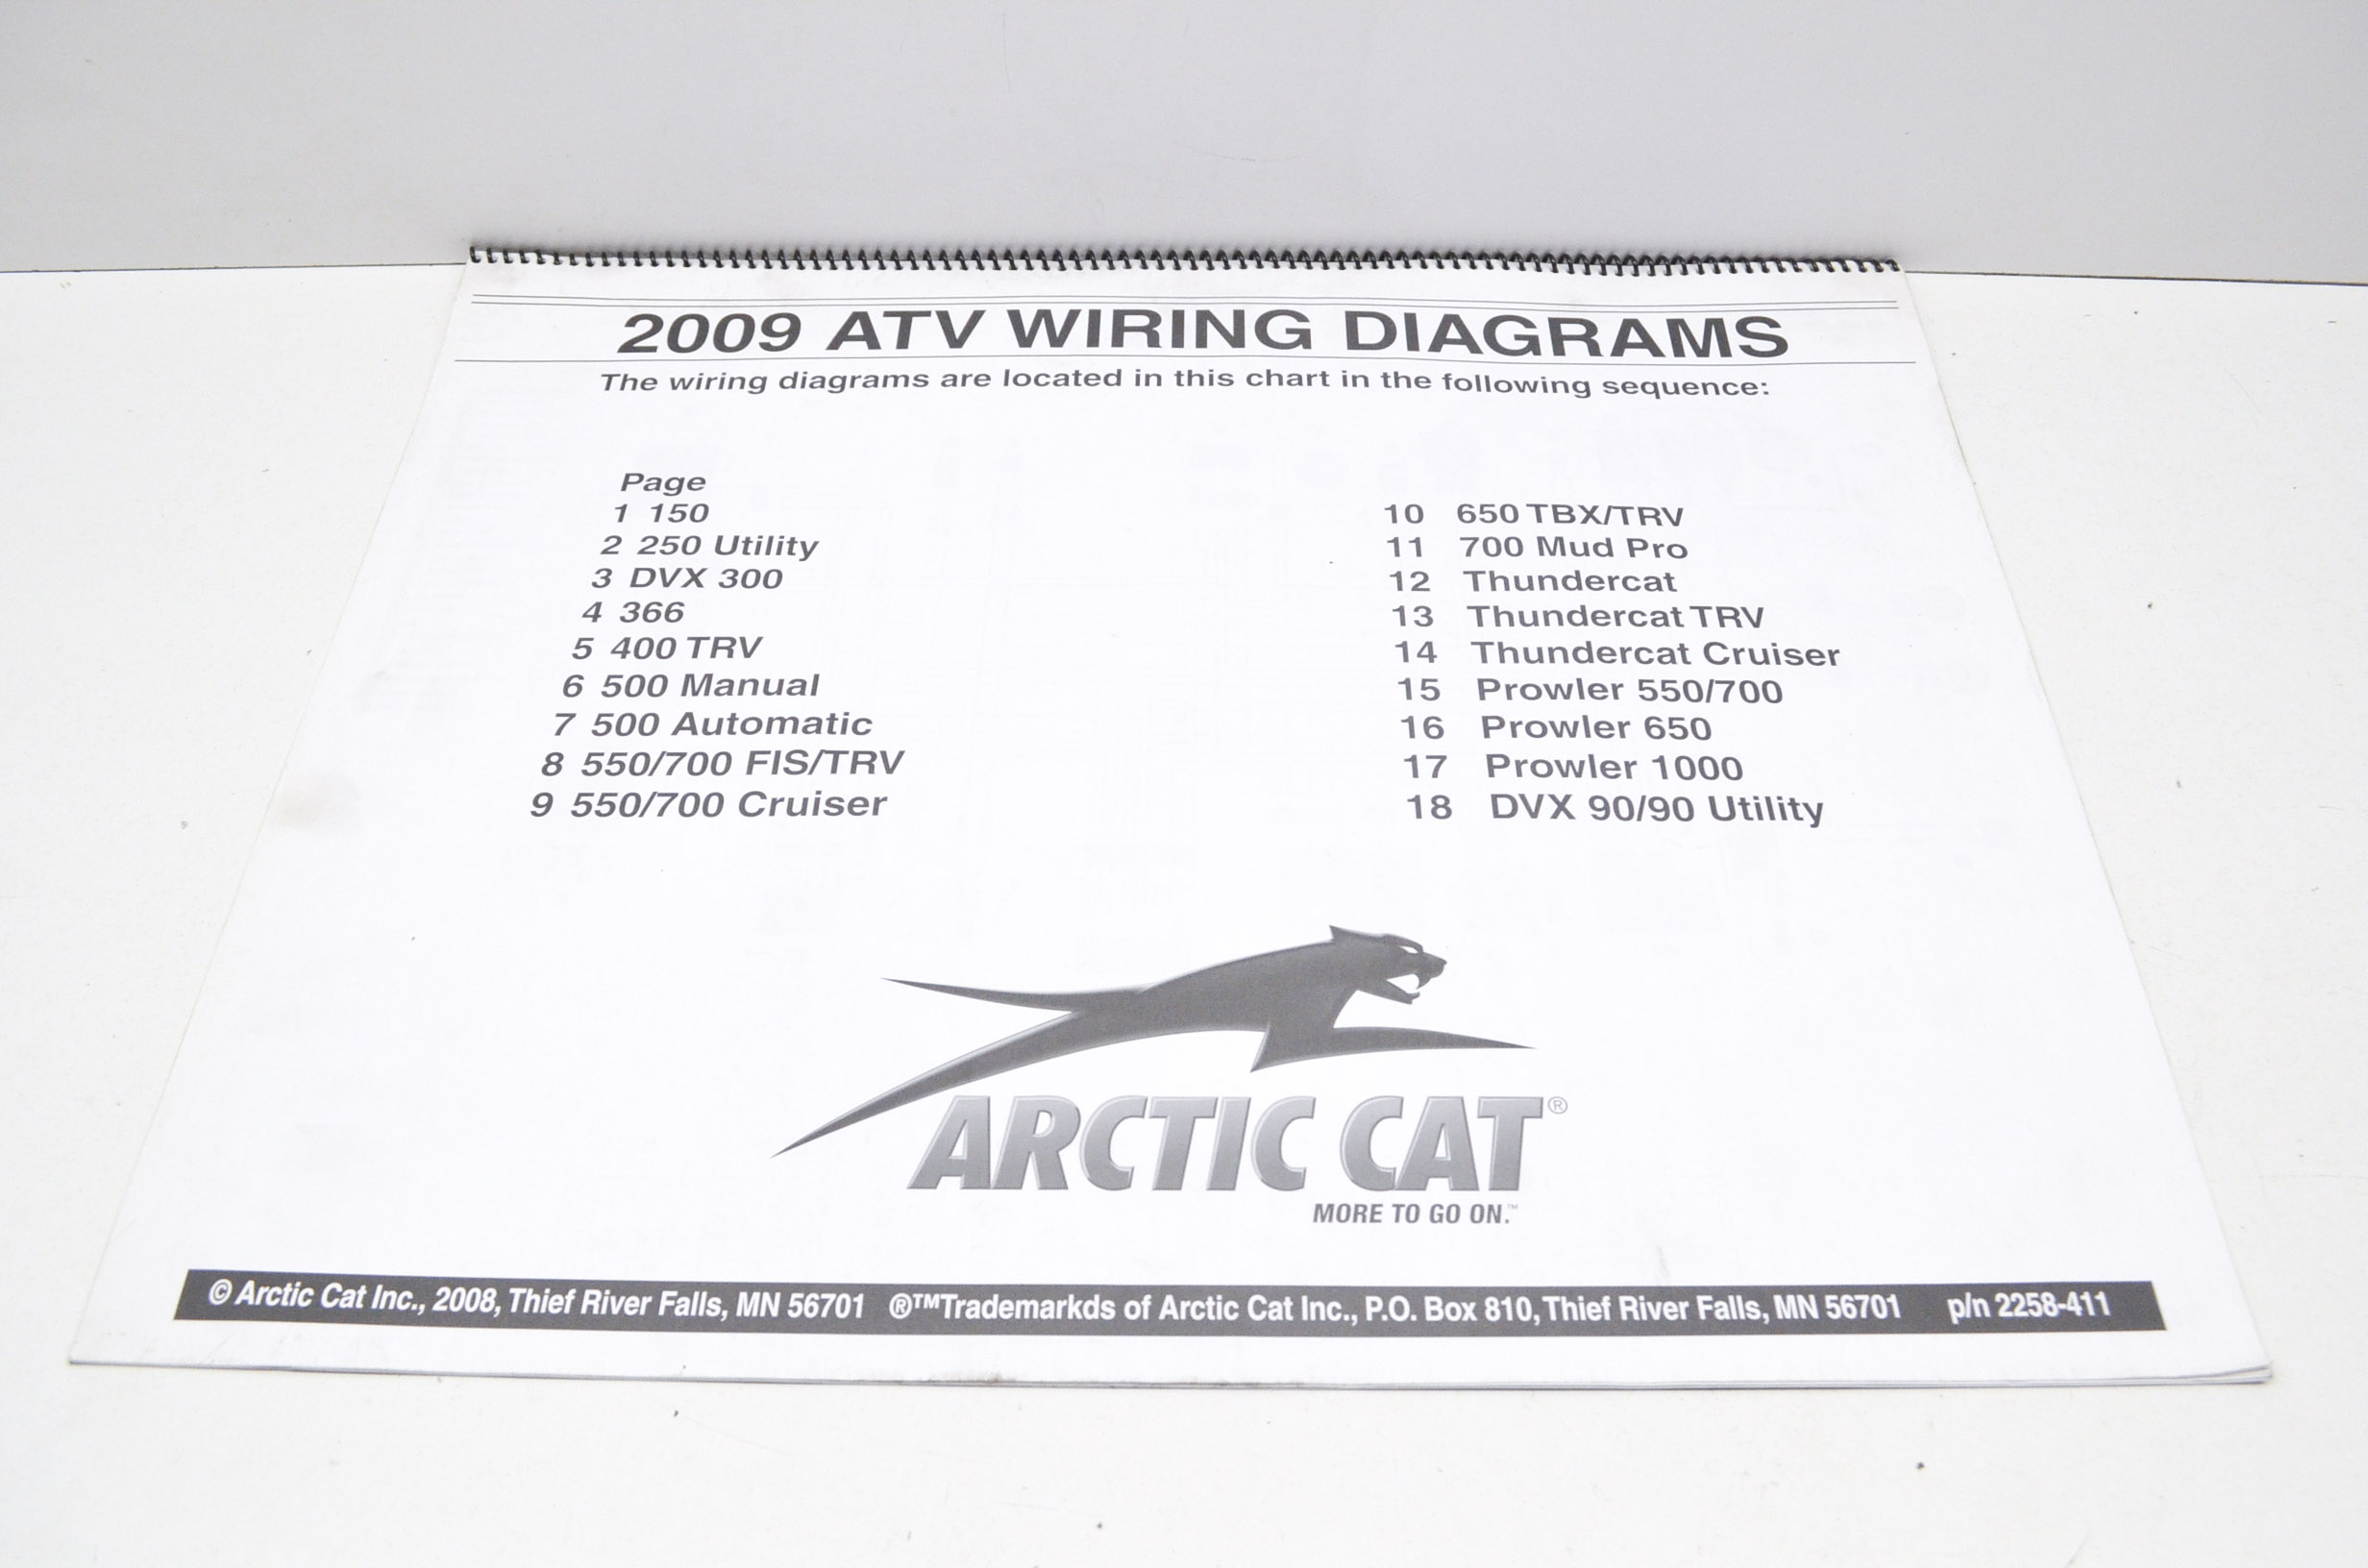 Wiring Diagram For 2008 Prowler 650 Arctic Cat List Of Schematic 2001 2258 411 2009 Atv Diagrams Qty 1 Walmart Com Rh